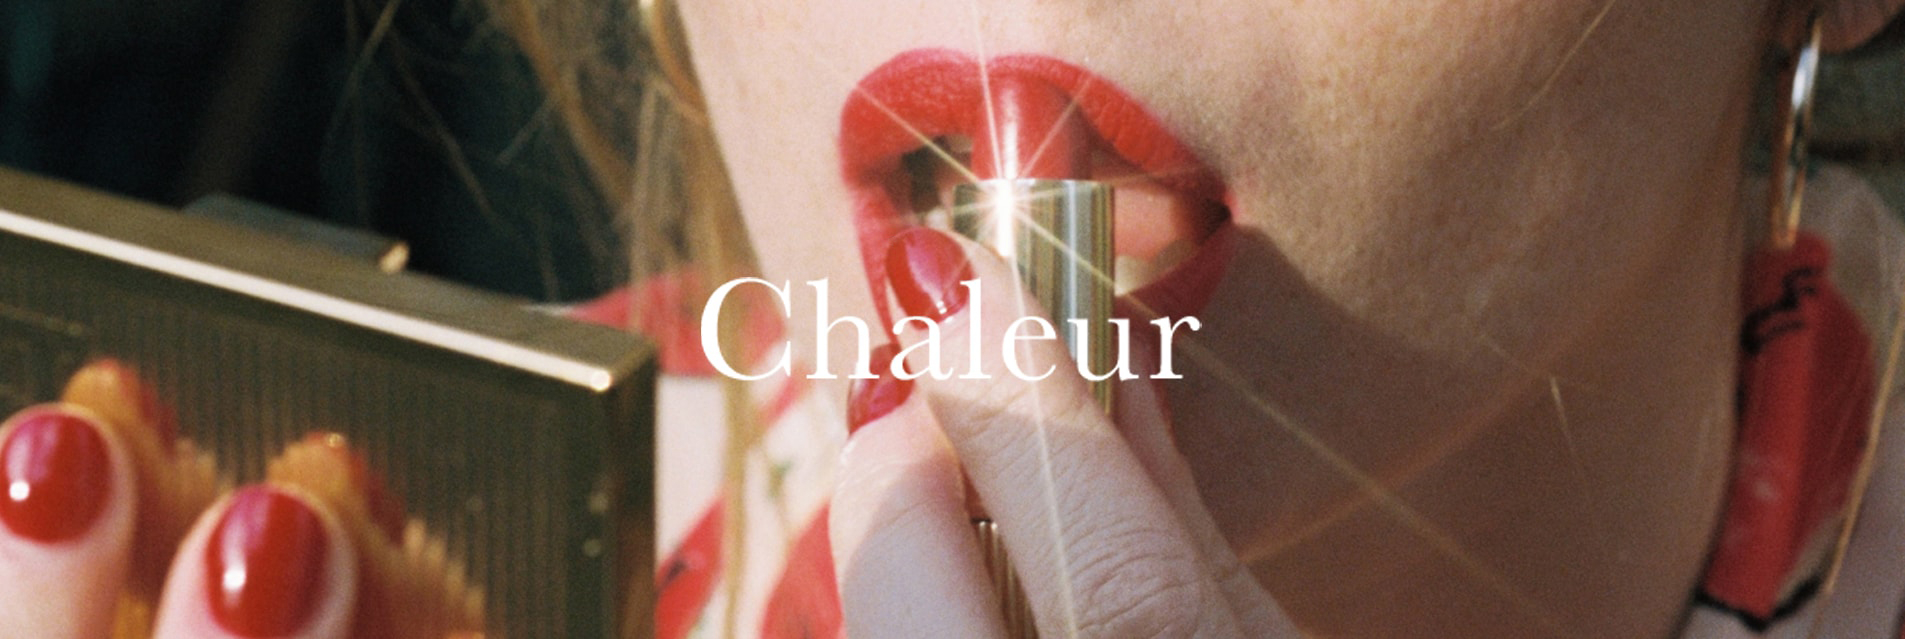 The Chaleur Collection - New